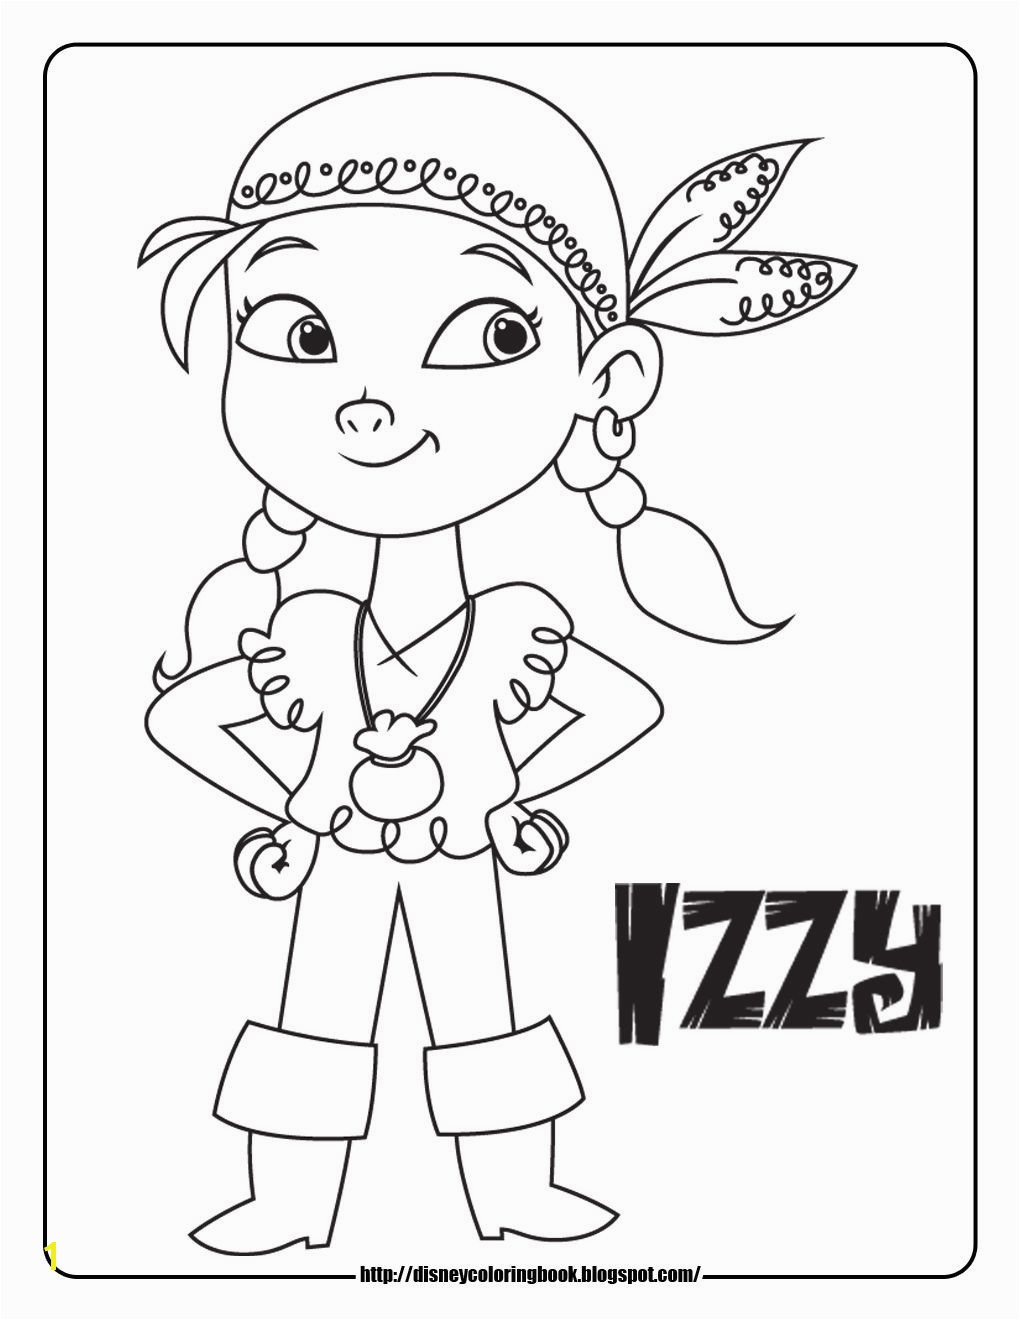 Disney Coloring Pages and Sheets for Kids Jake and the Neverland Pirates 1 Free